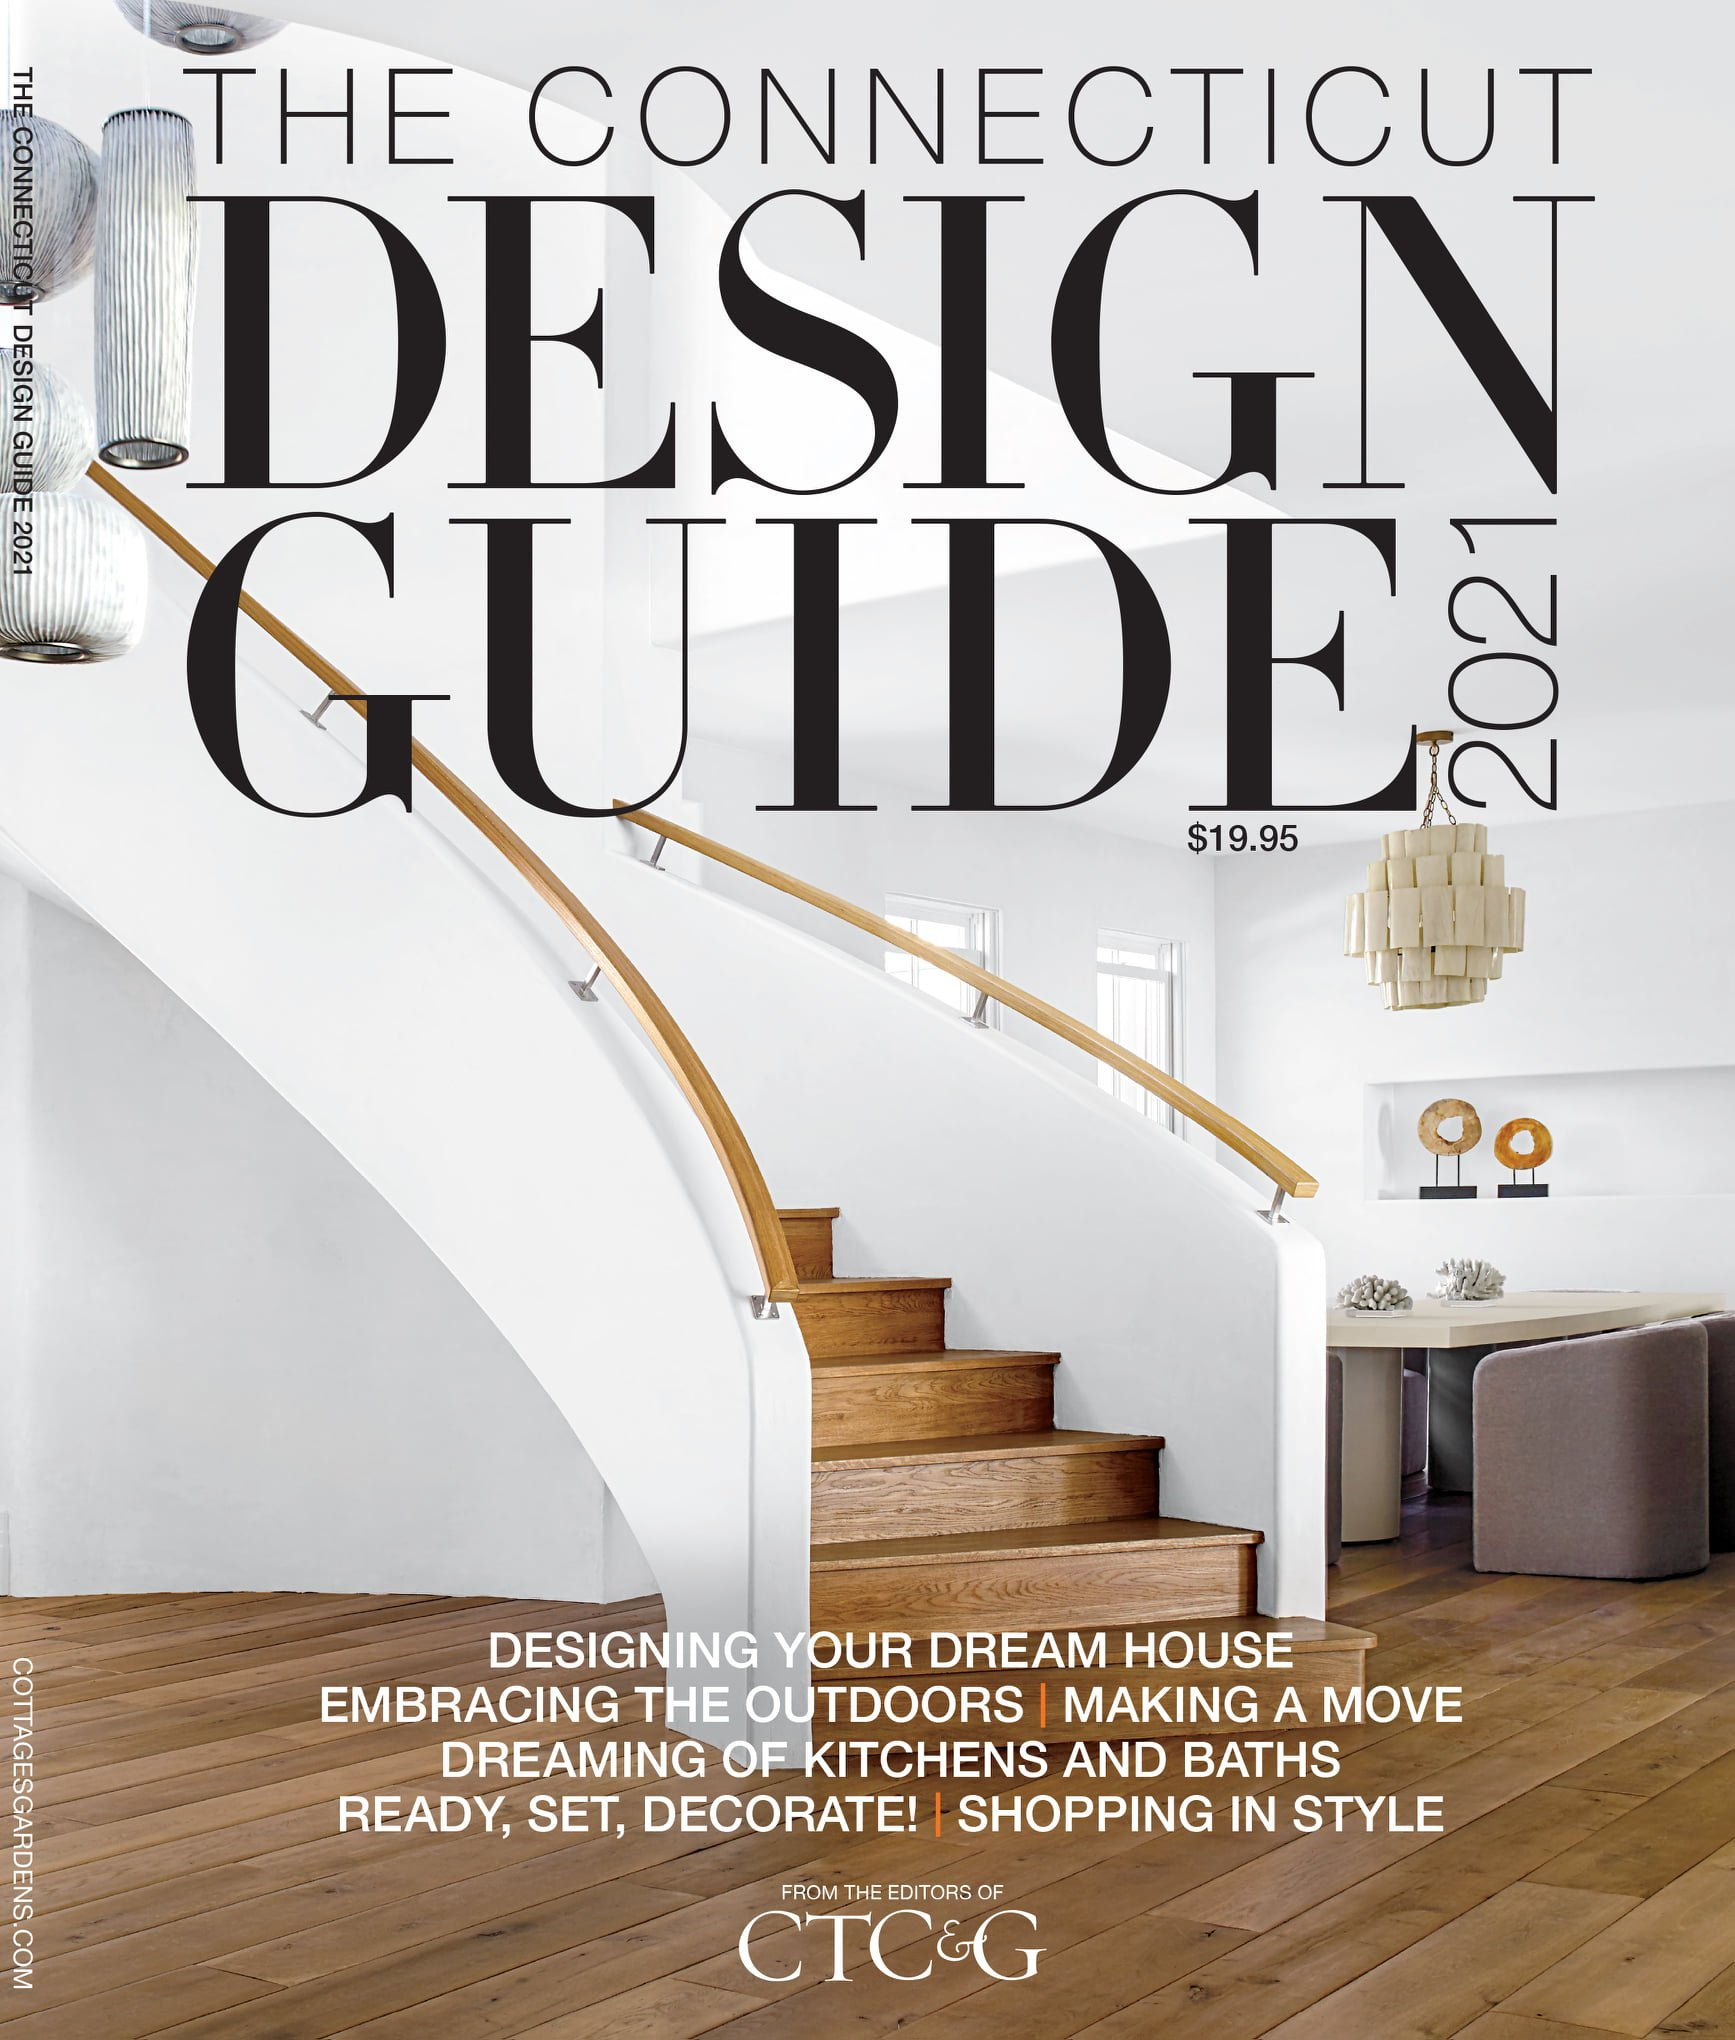 Connecticut Design Guide covers